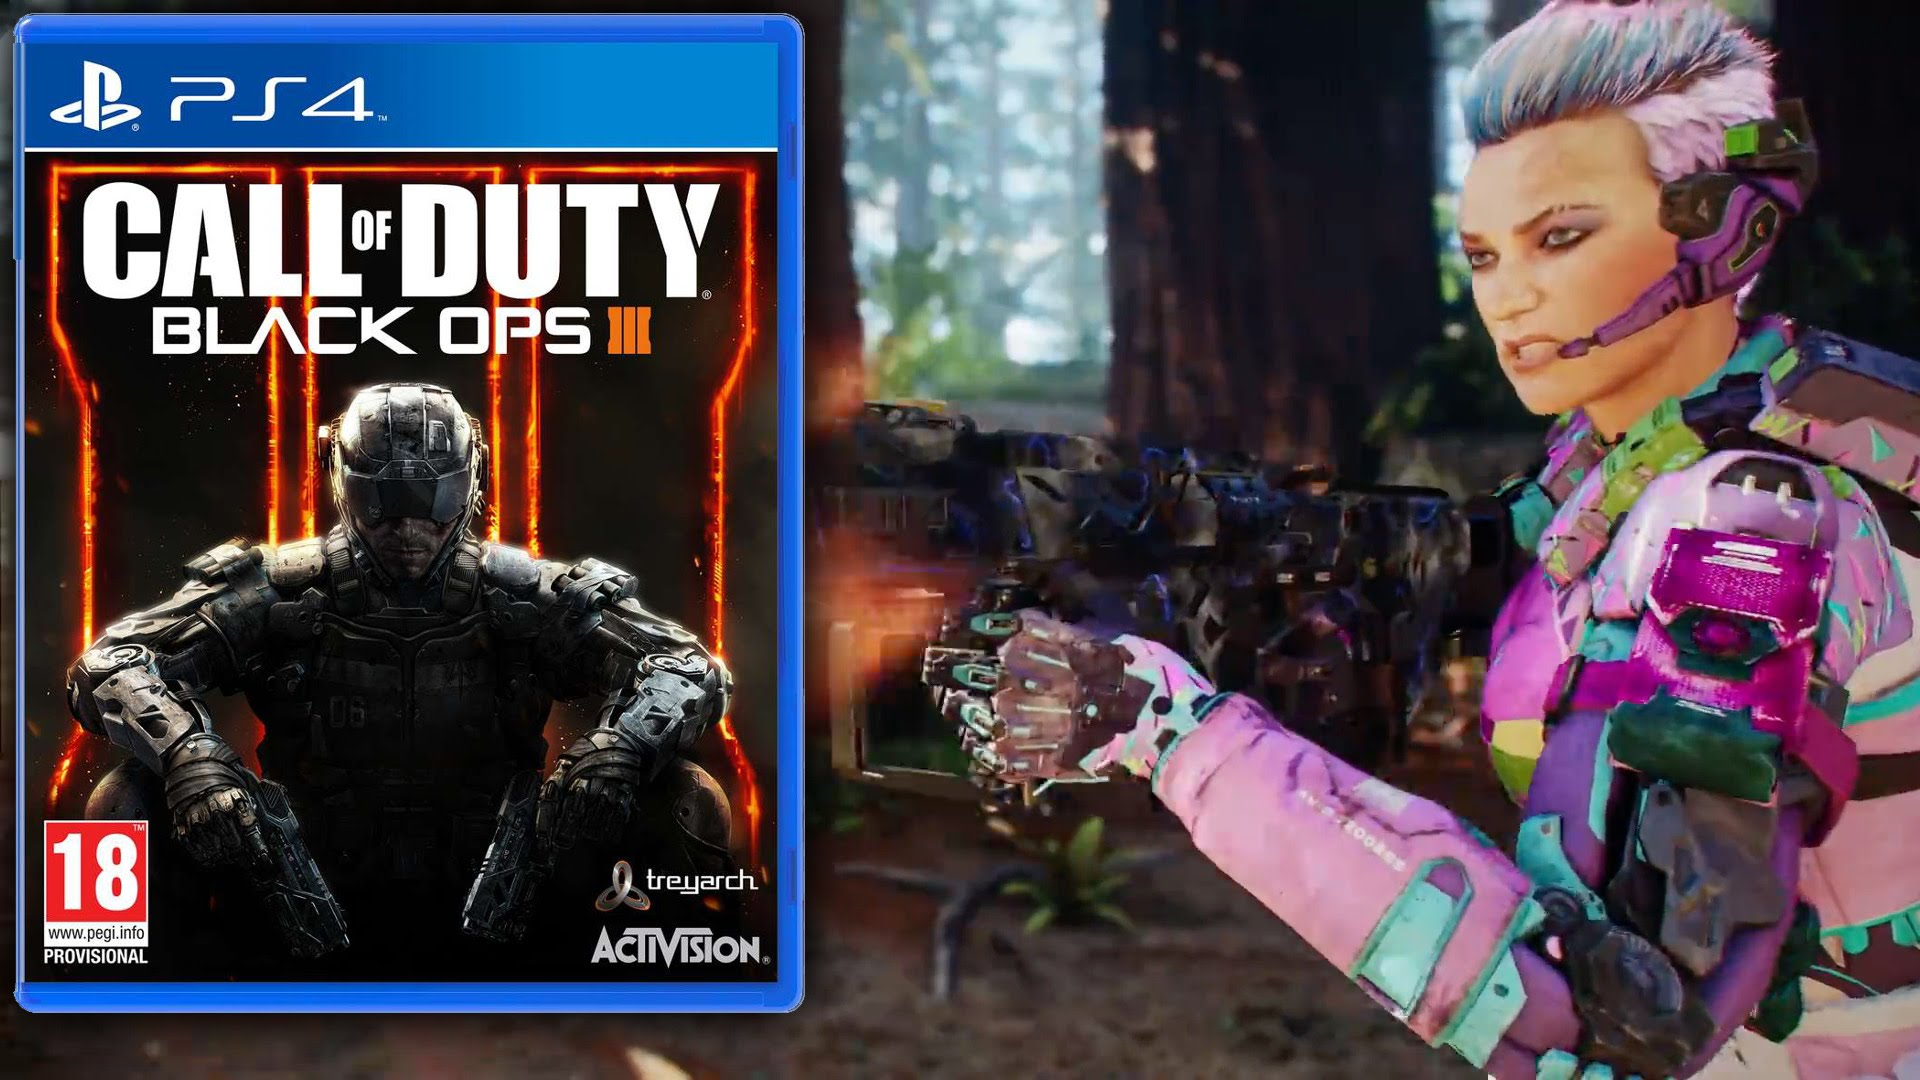 Call of Duty Black Ops III Family Guide